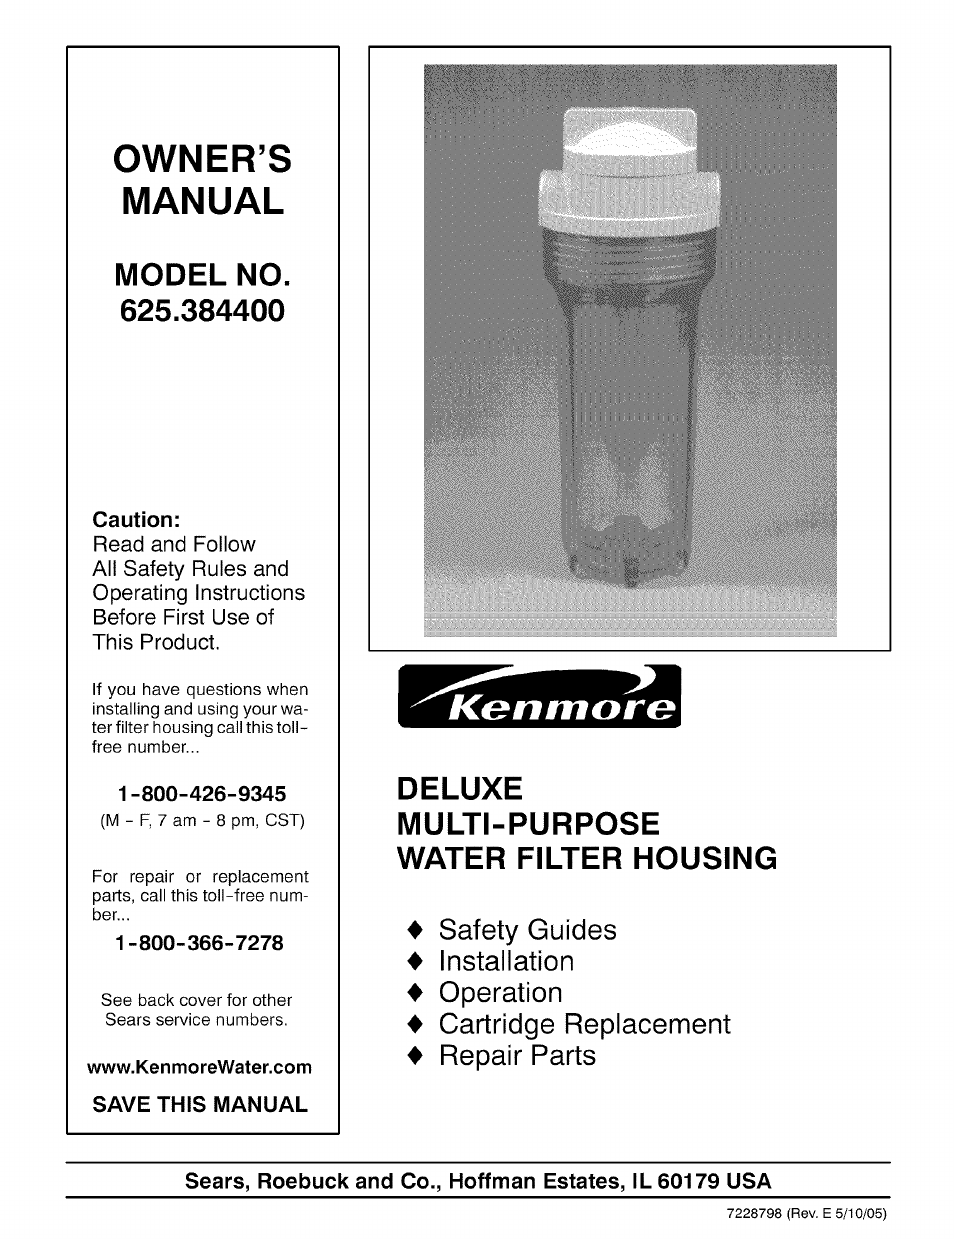 Kenmore DELUXE 625.3844 User Manual | 12 pages